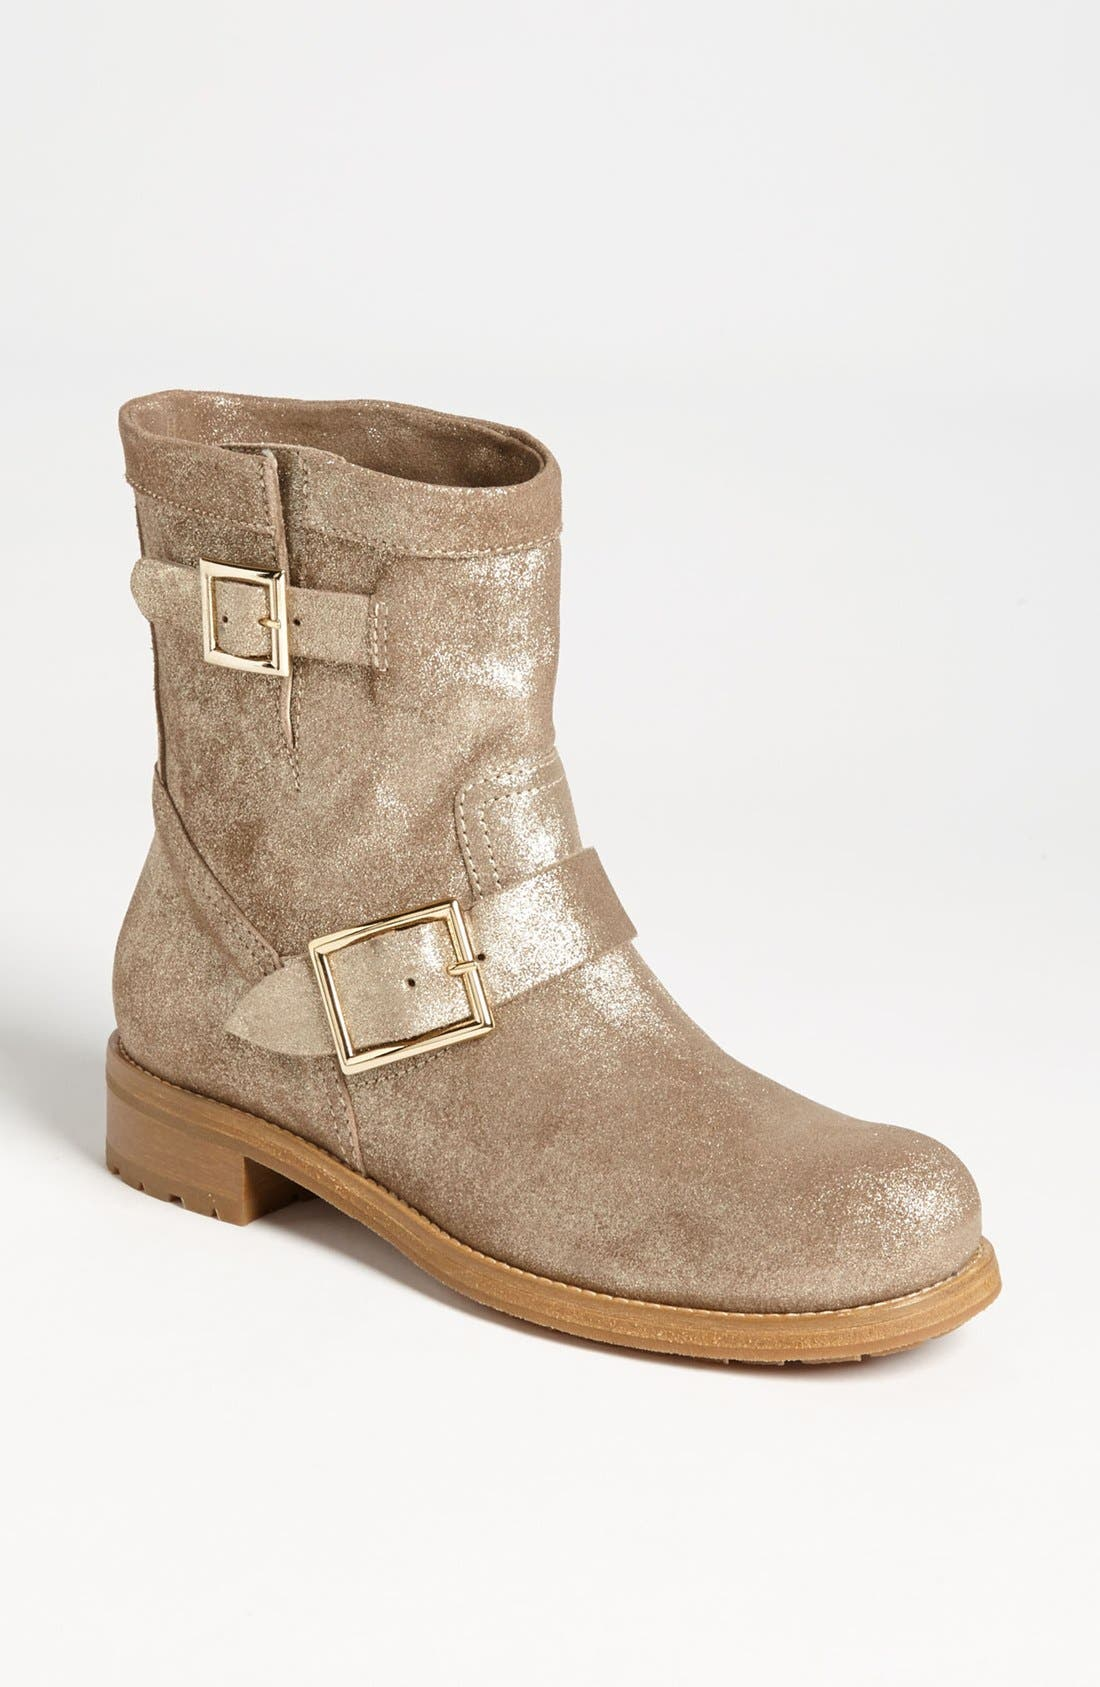 Alternate Image 1 Selected - Jimmy Choo 'Youth' Biker Boot